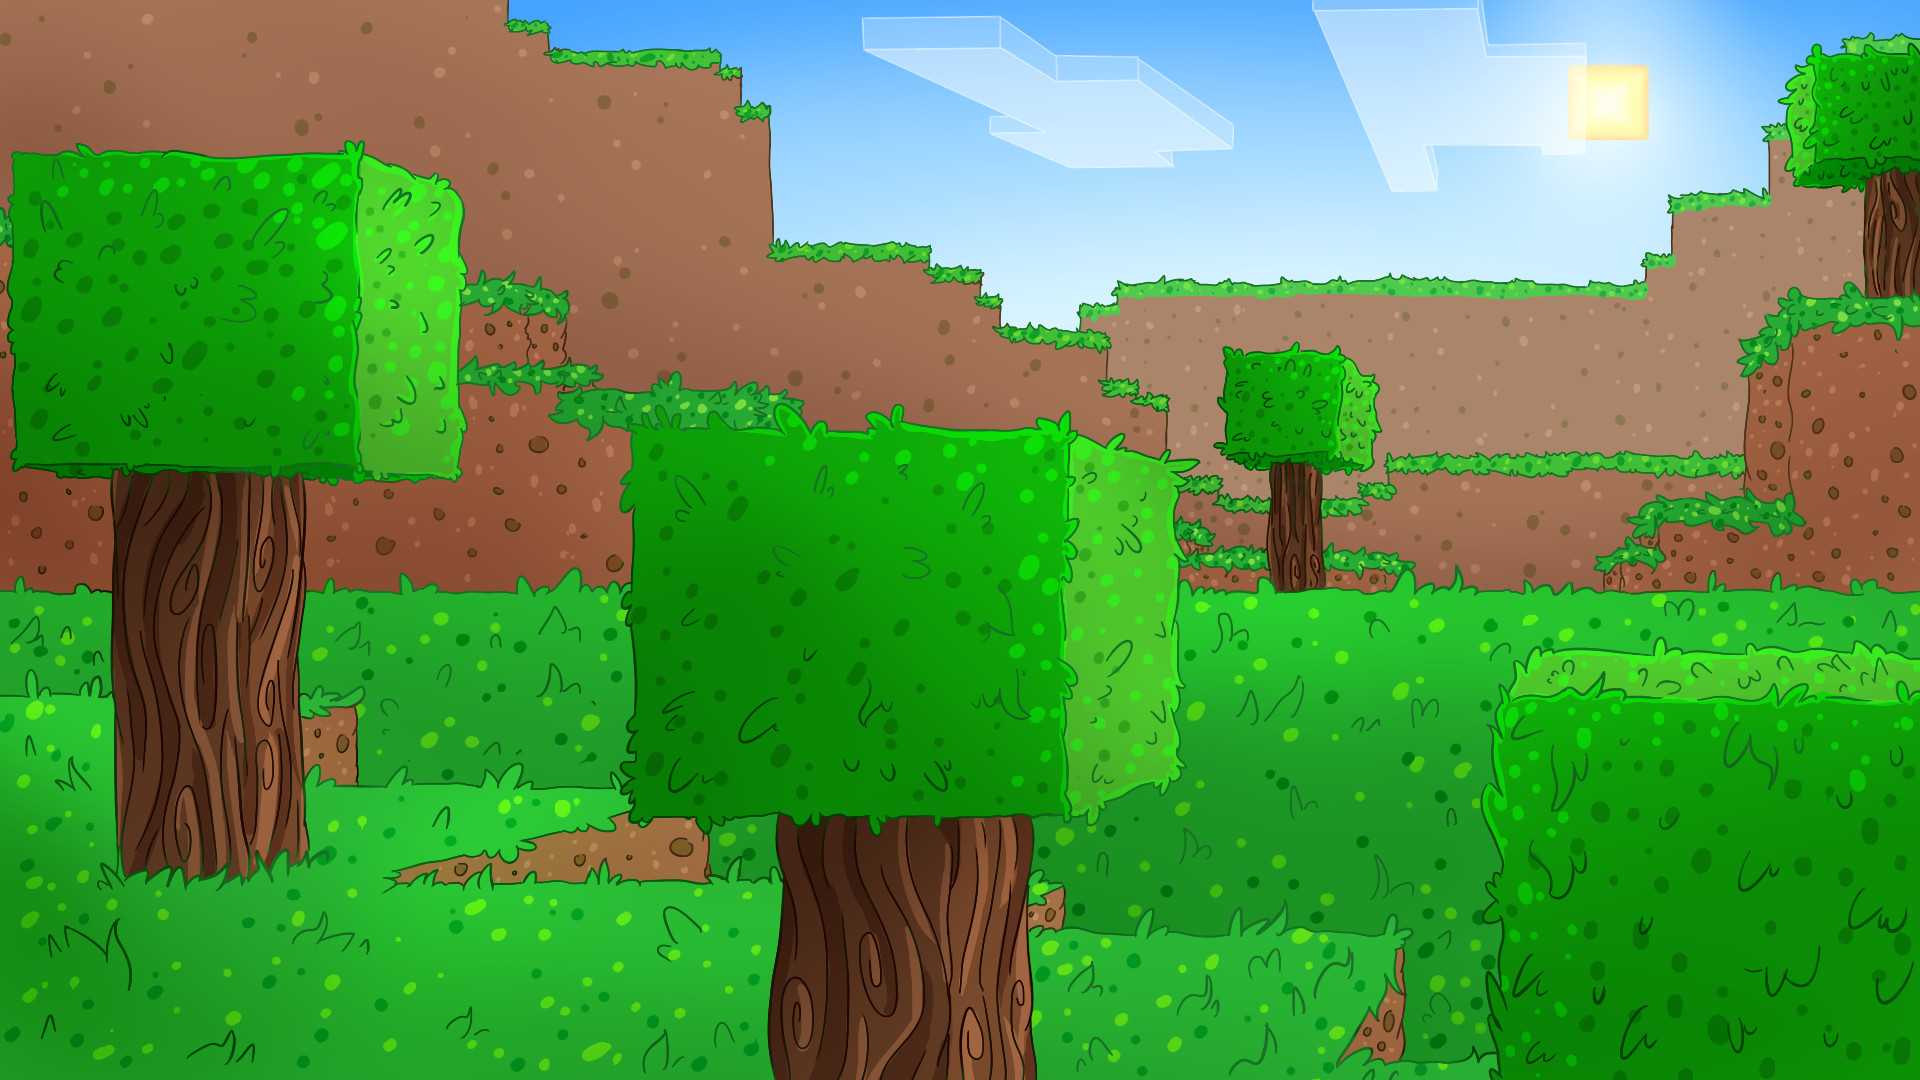 1920x1080 Minecraft Background by DoritoDemon2 Minecraft Background by DoritoDemon2